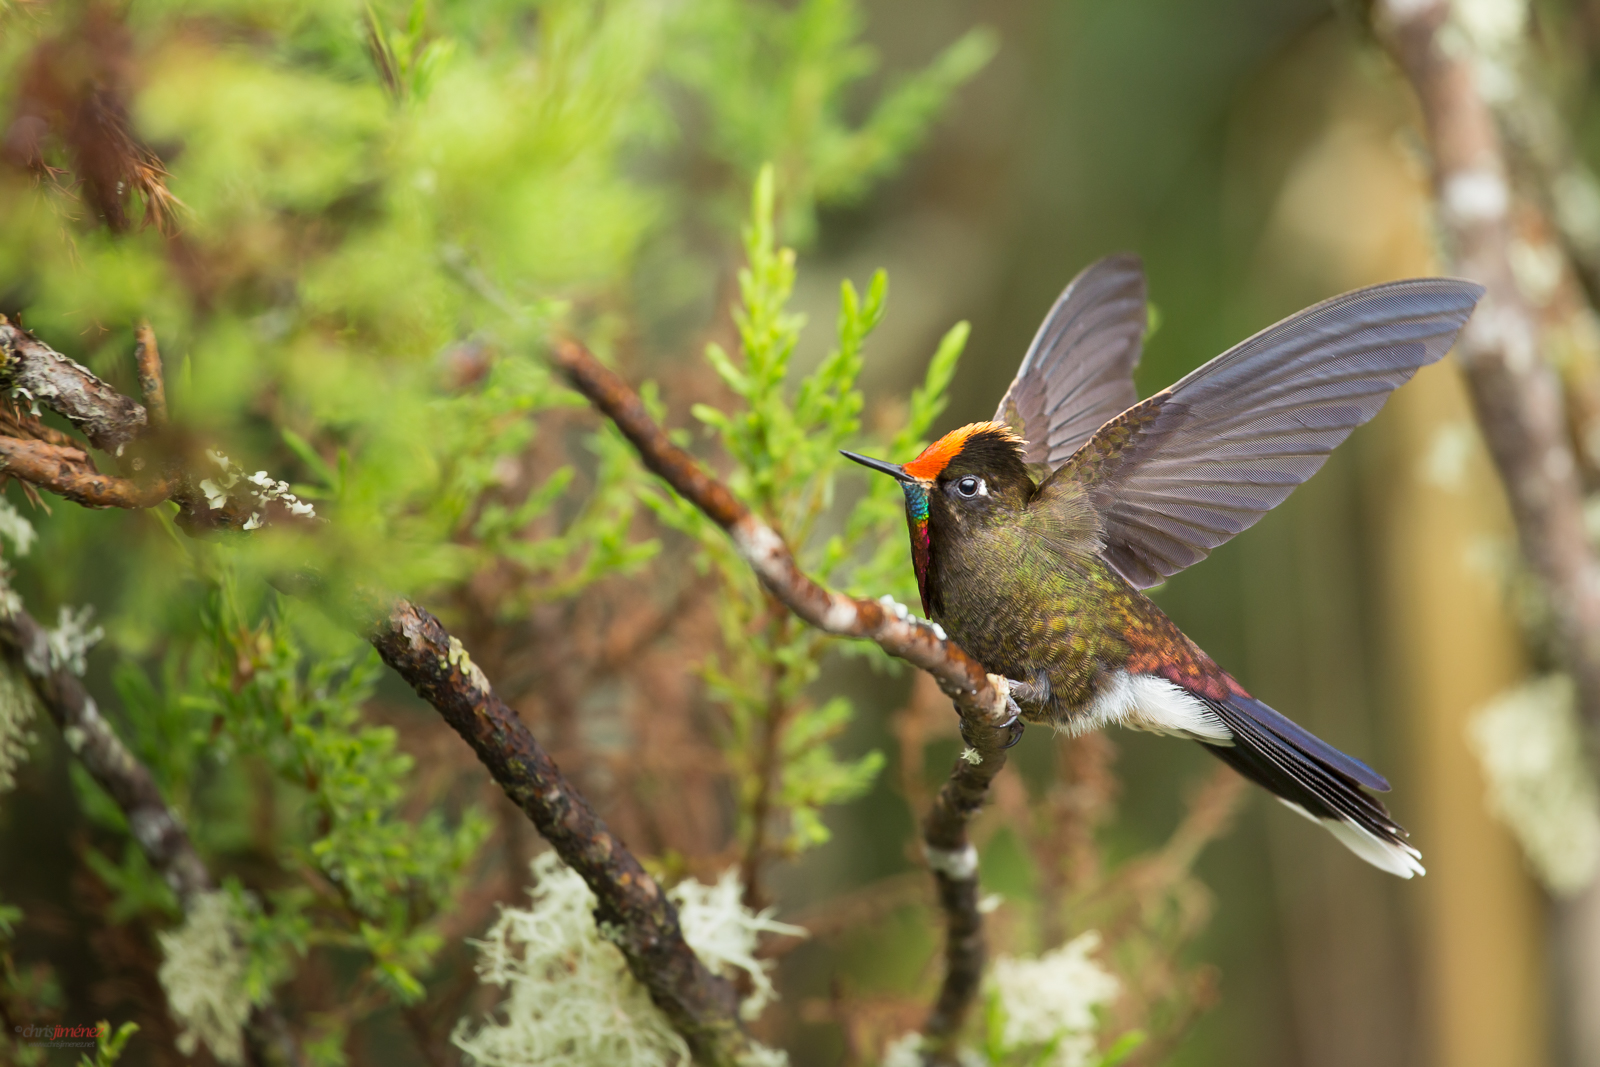 Rainbow-bearbed thornbill (Chalcostigma herrani) extending its wings at the highlands of Colombia, Manizales